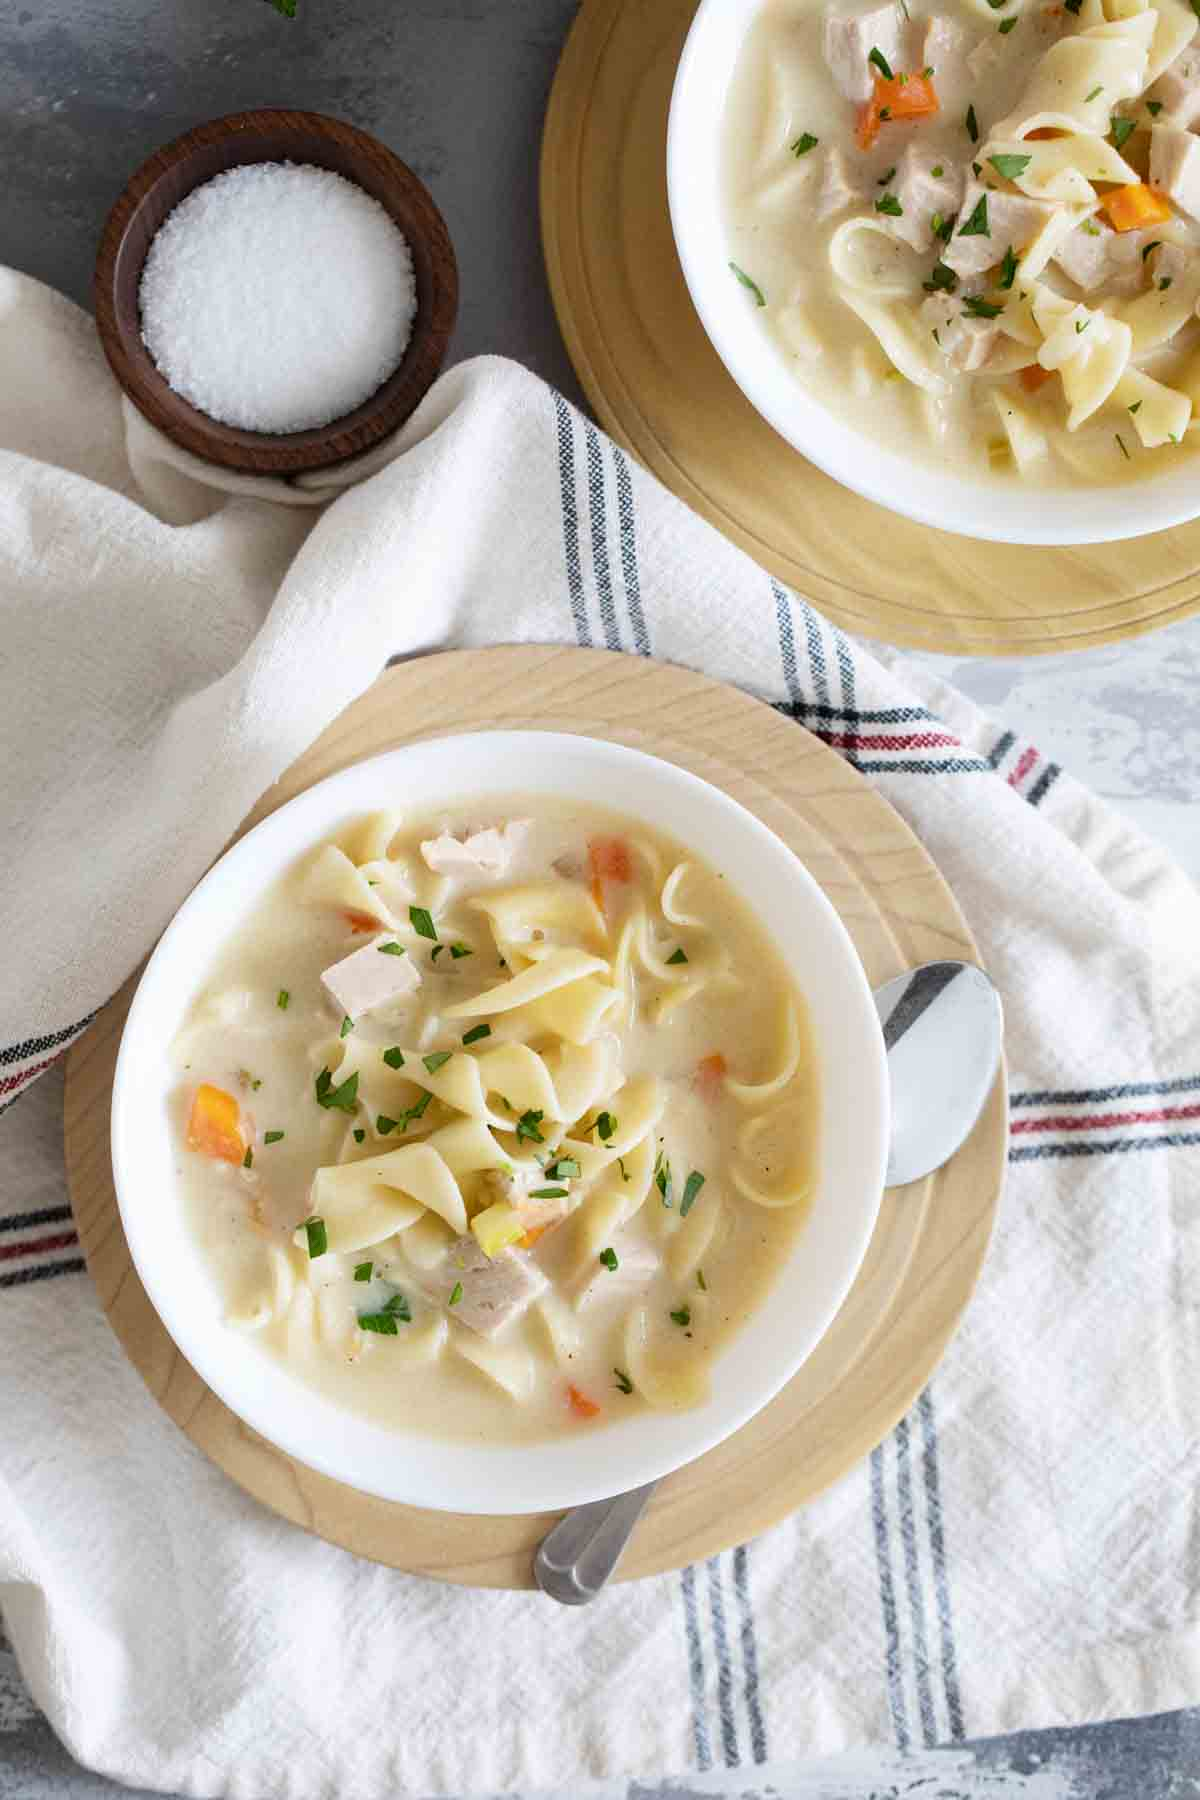 overhead view of Creamy Turkey Noodle Soup in bowls on plates